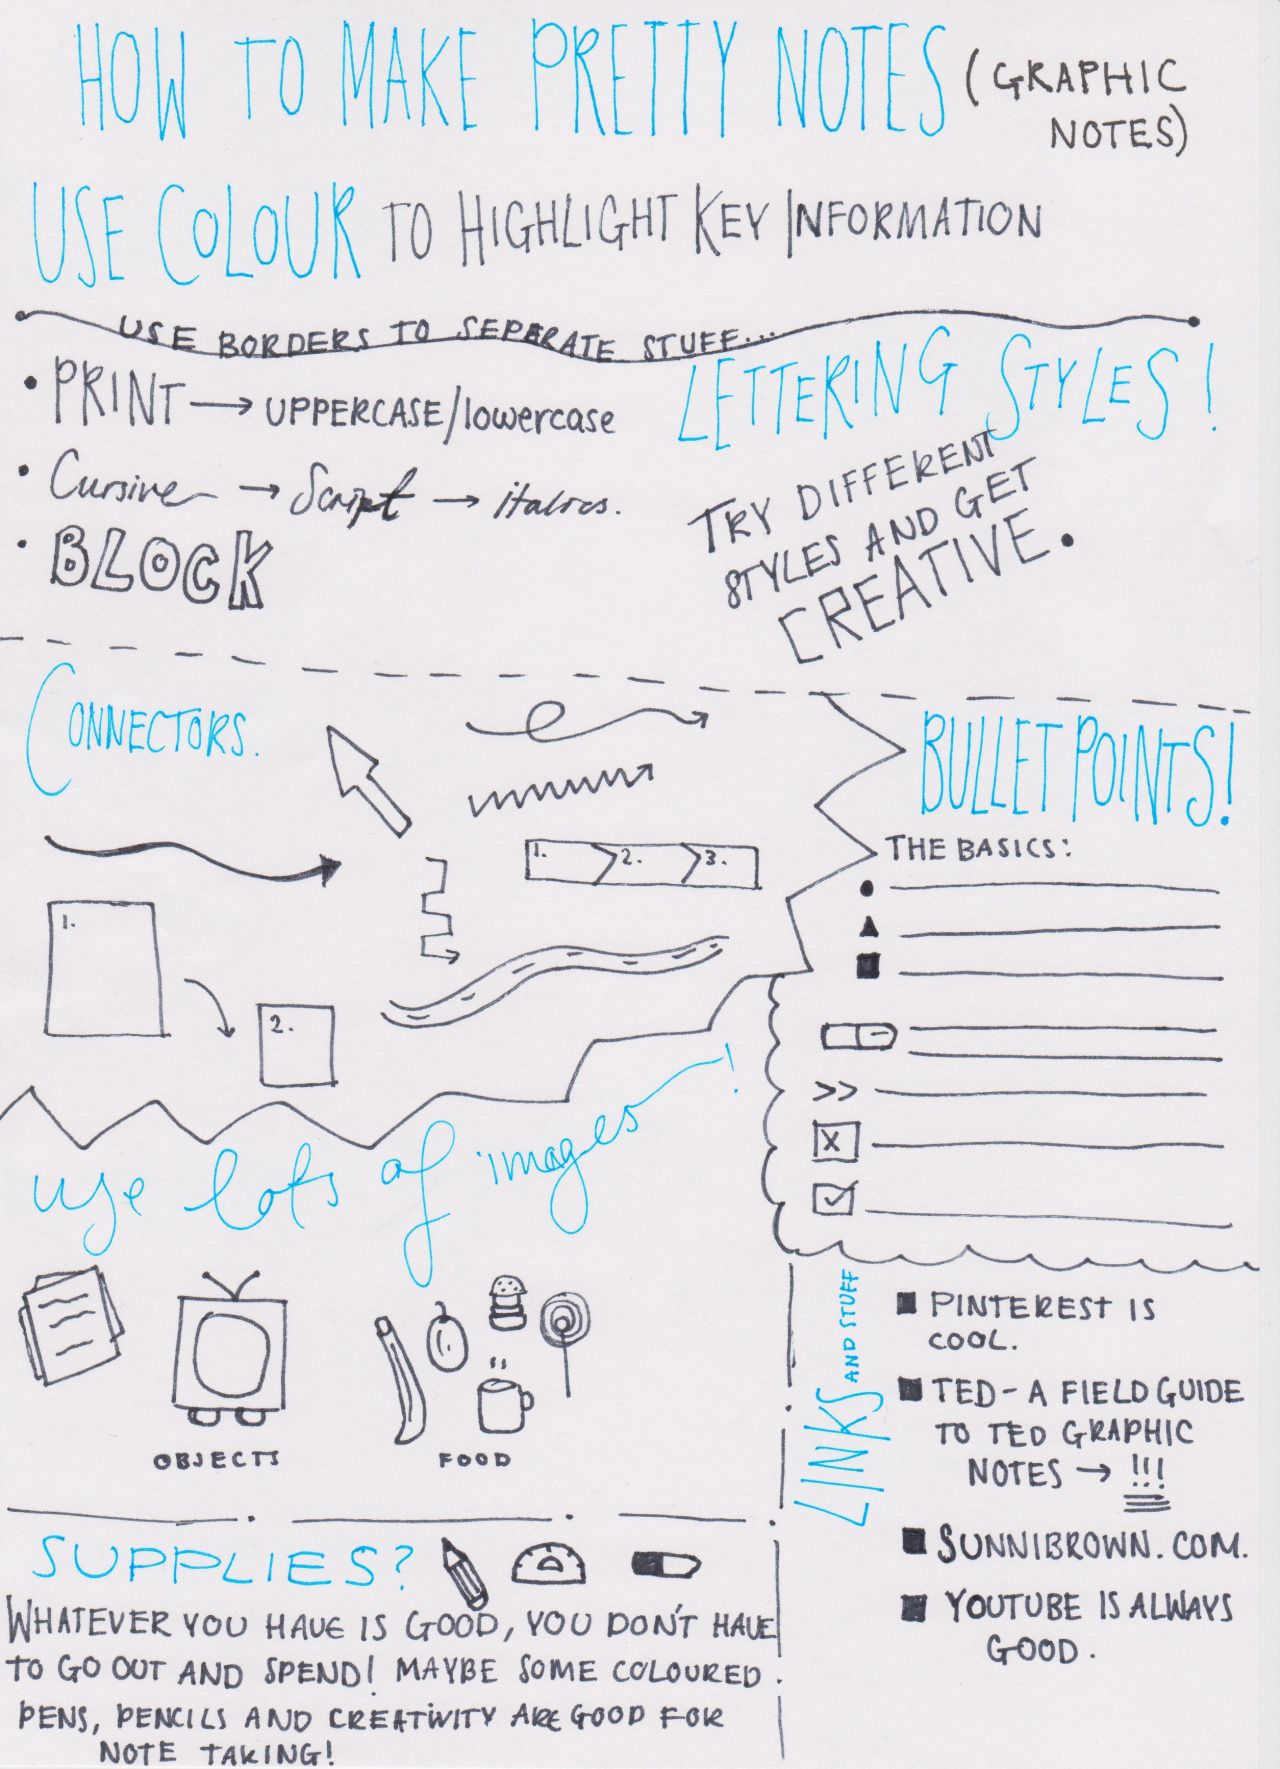 studyspoinspo:how to make pretty notes (graphic notes)